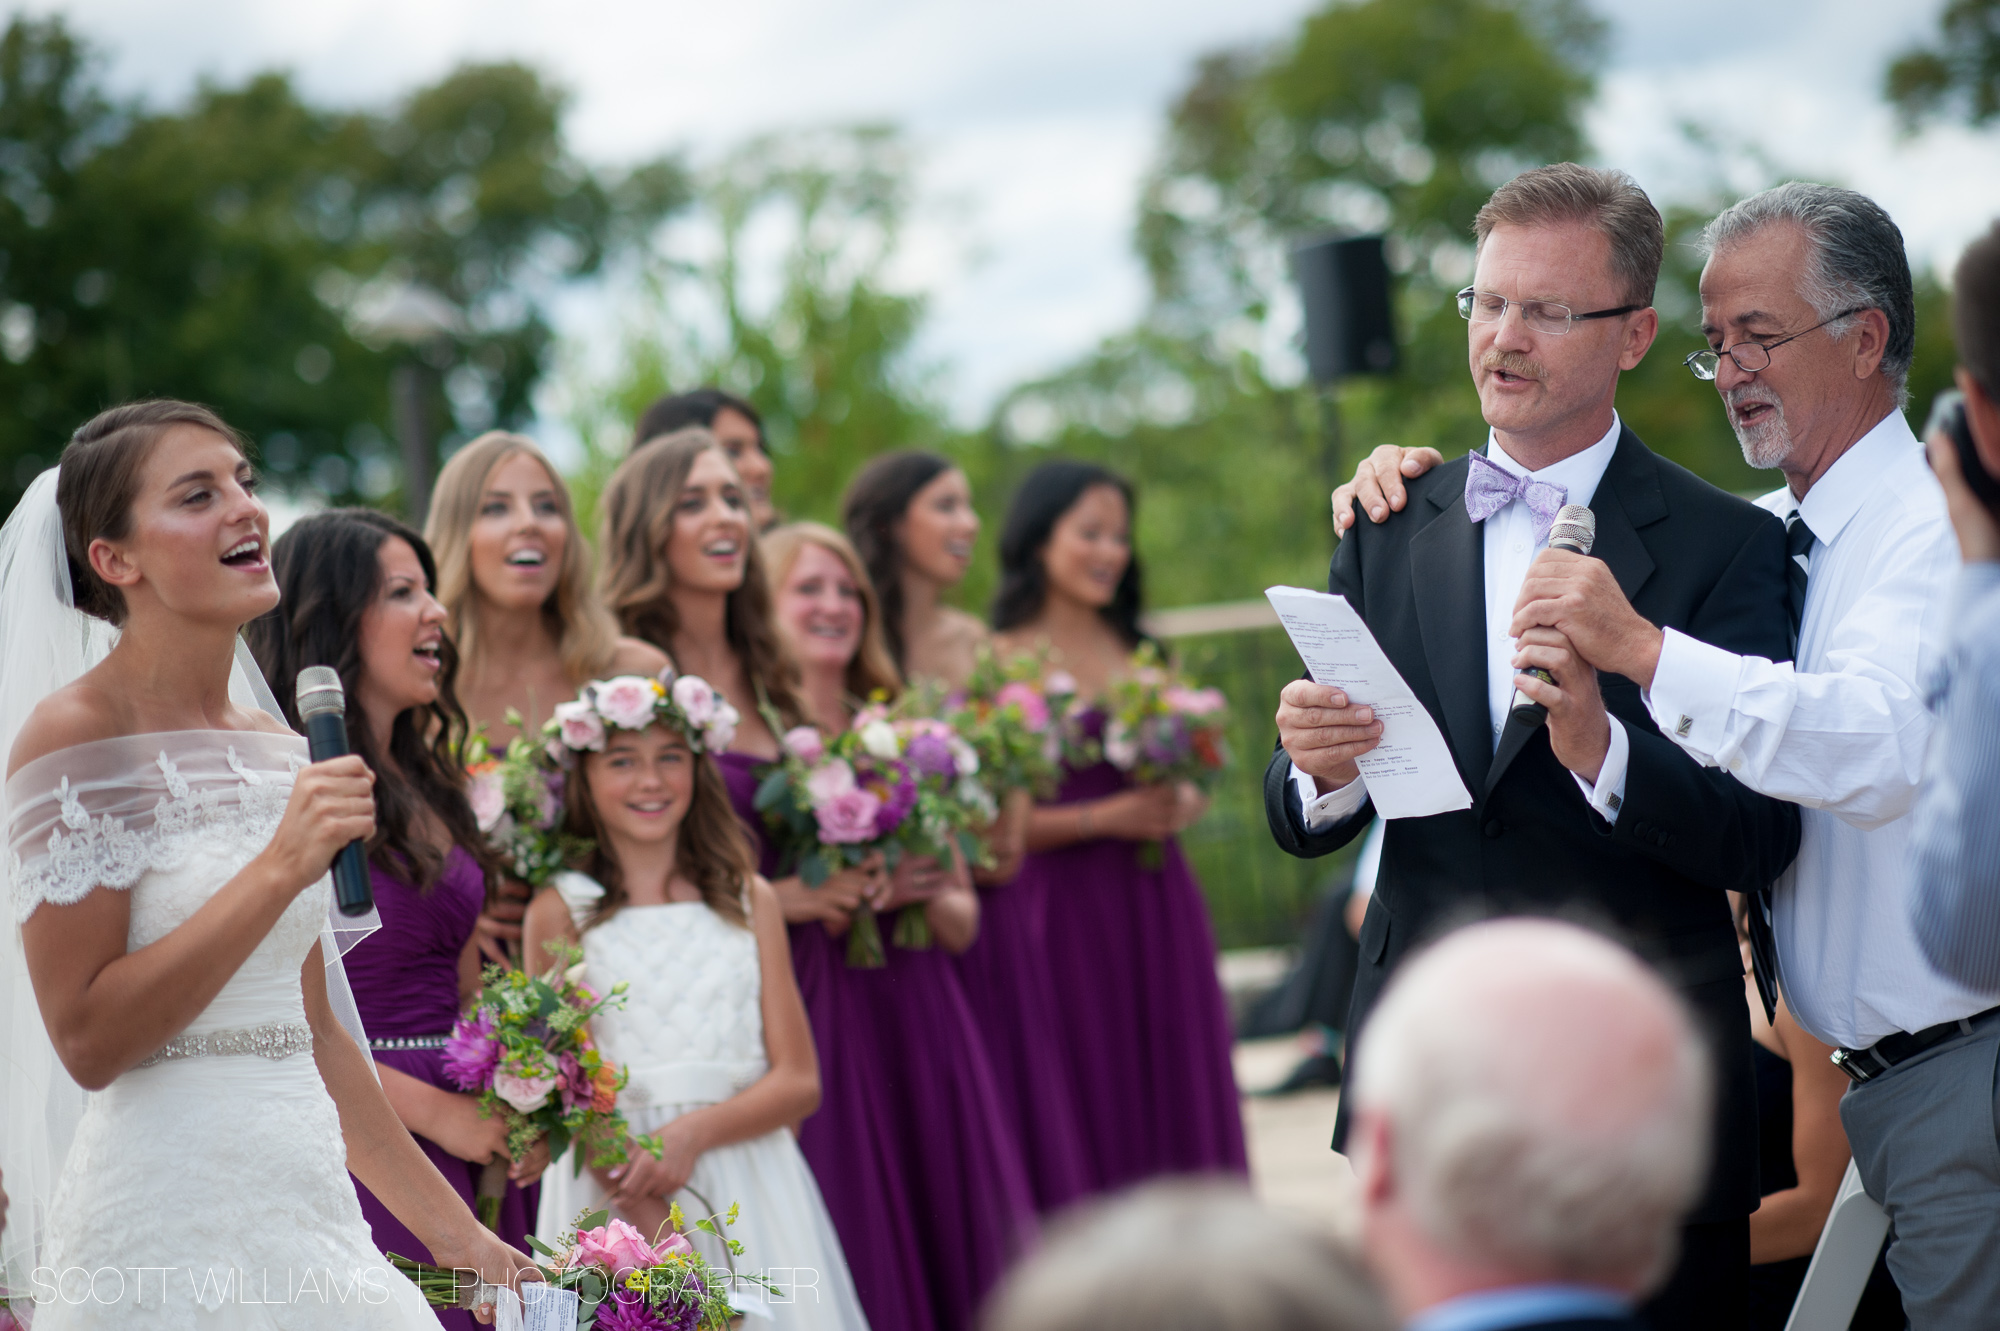 muskoka-wedding-photograph-011.jpg